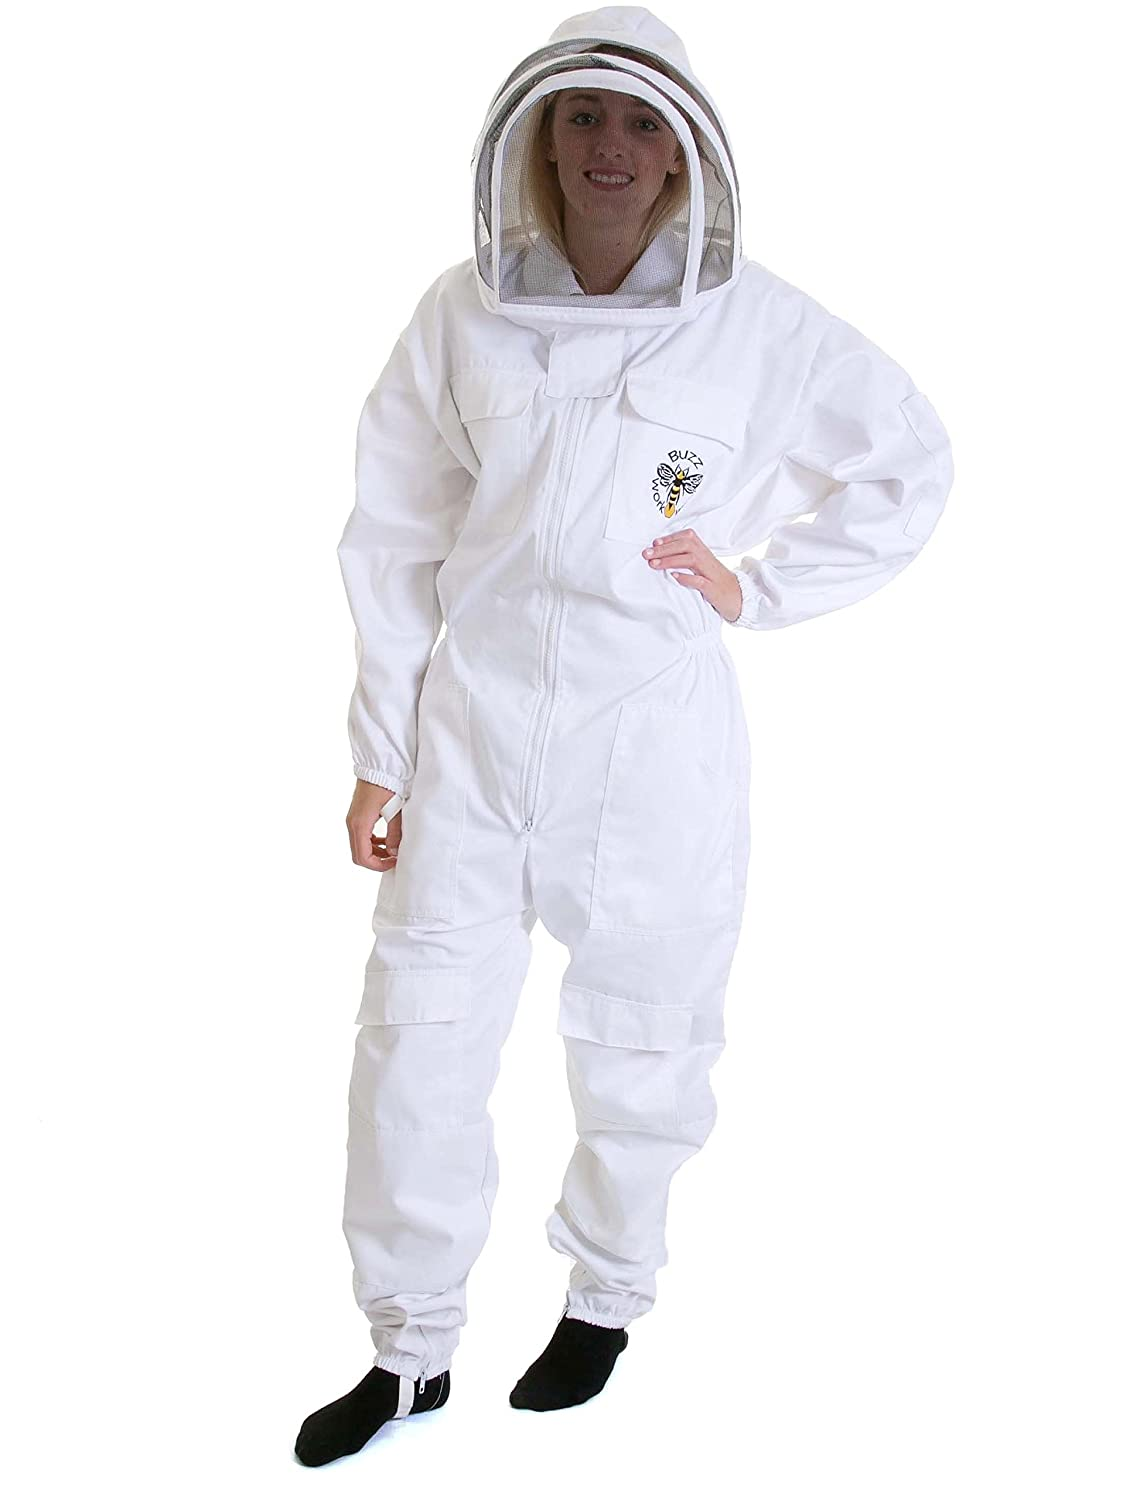 Bee suit - ALL SIZES (Extra extra large) simonthebeekeeper